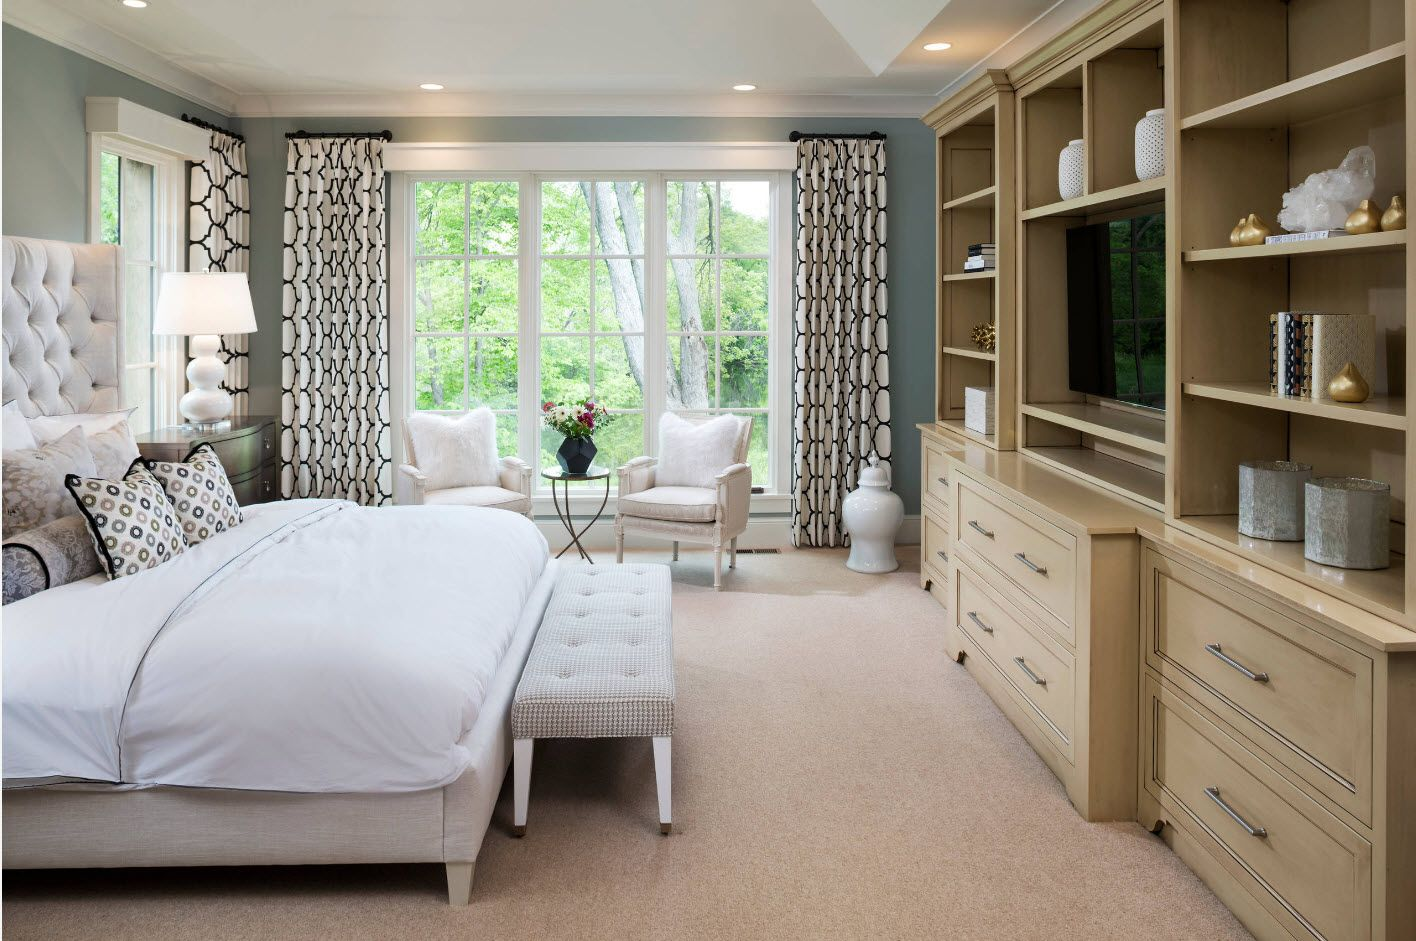 Wooden furniture set for the spacious hi-tech and English country mix bedroom with screen lattice windows and dotted accent draperies